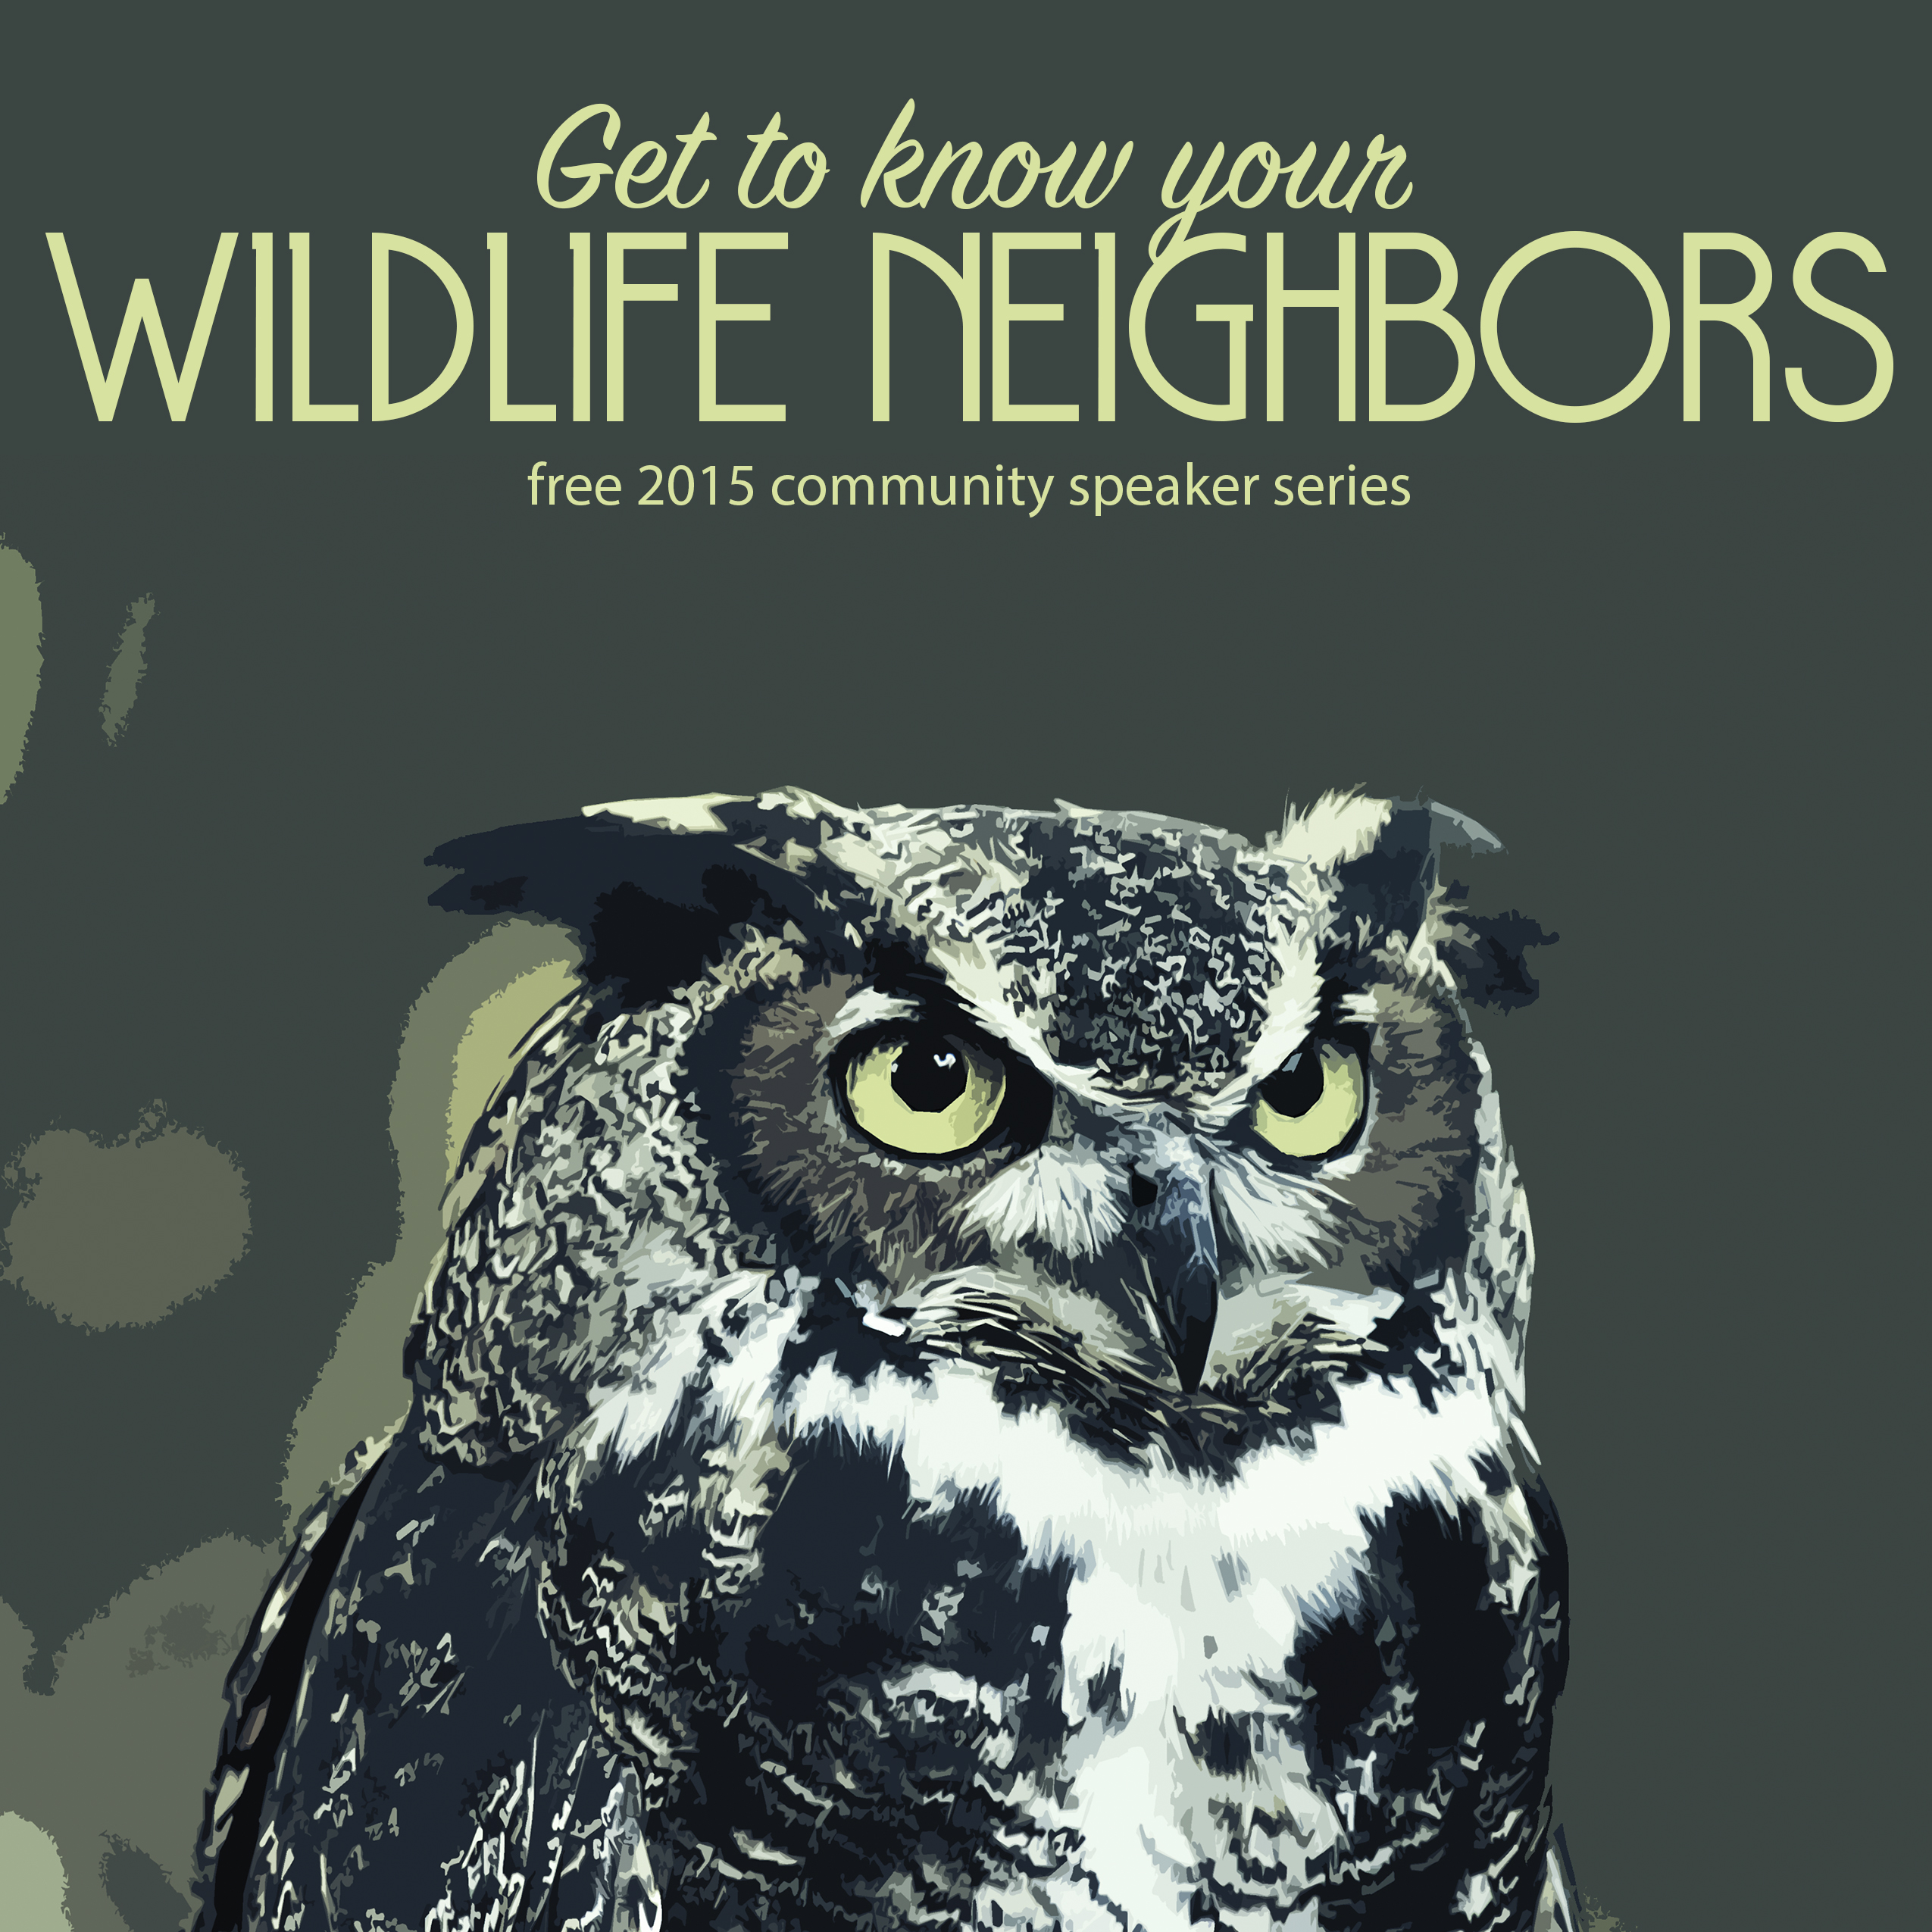 Wildlife Speaker Series Posters